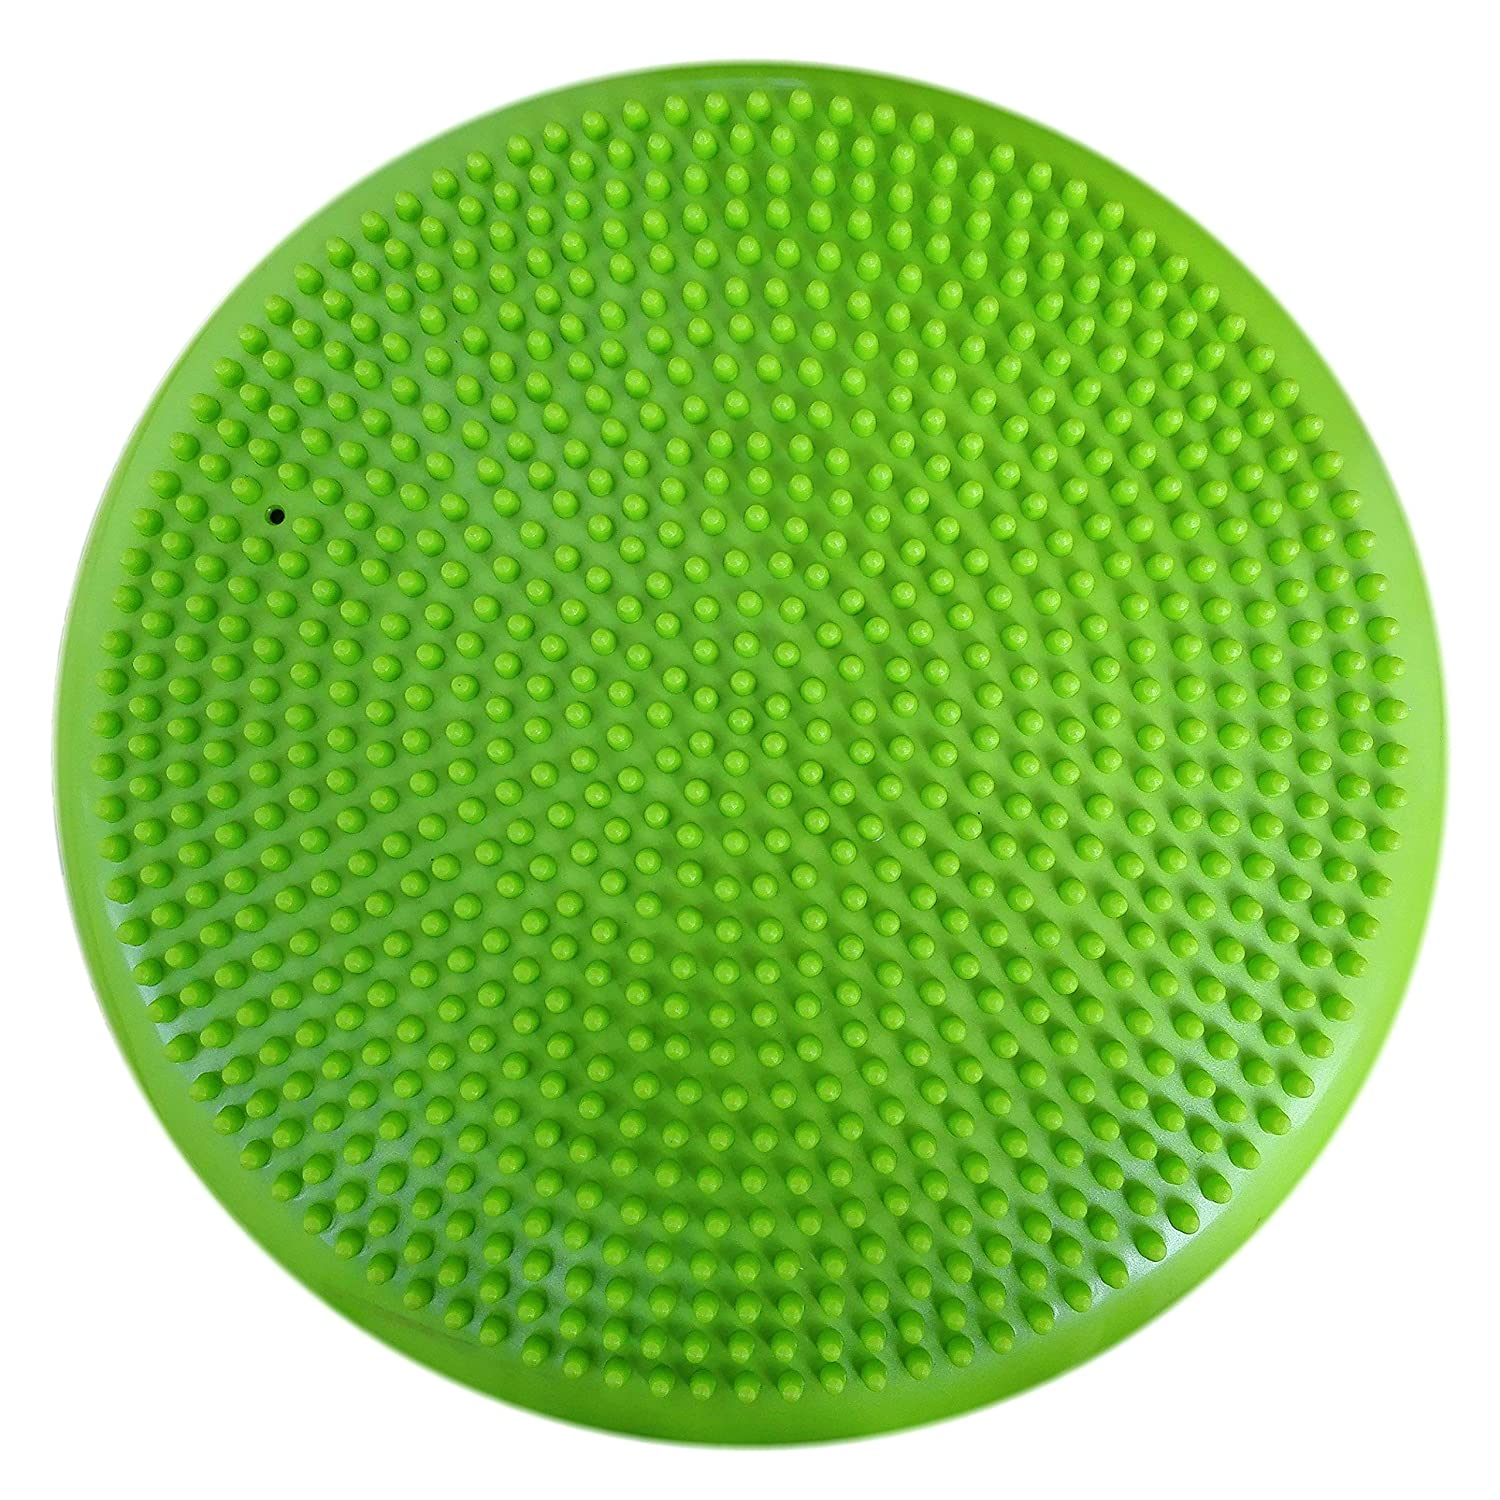 AppleRound Air Stability Wobble Cushion with Pump, 34cm 13.5in Diameter, Balance Disc, Sensory Wiggle Seat